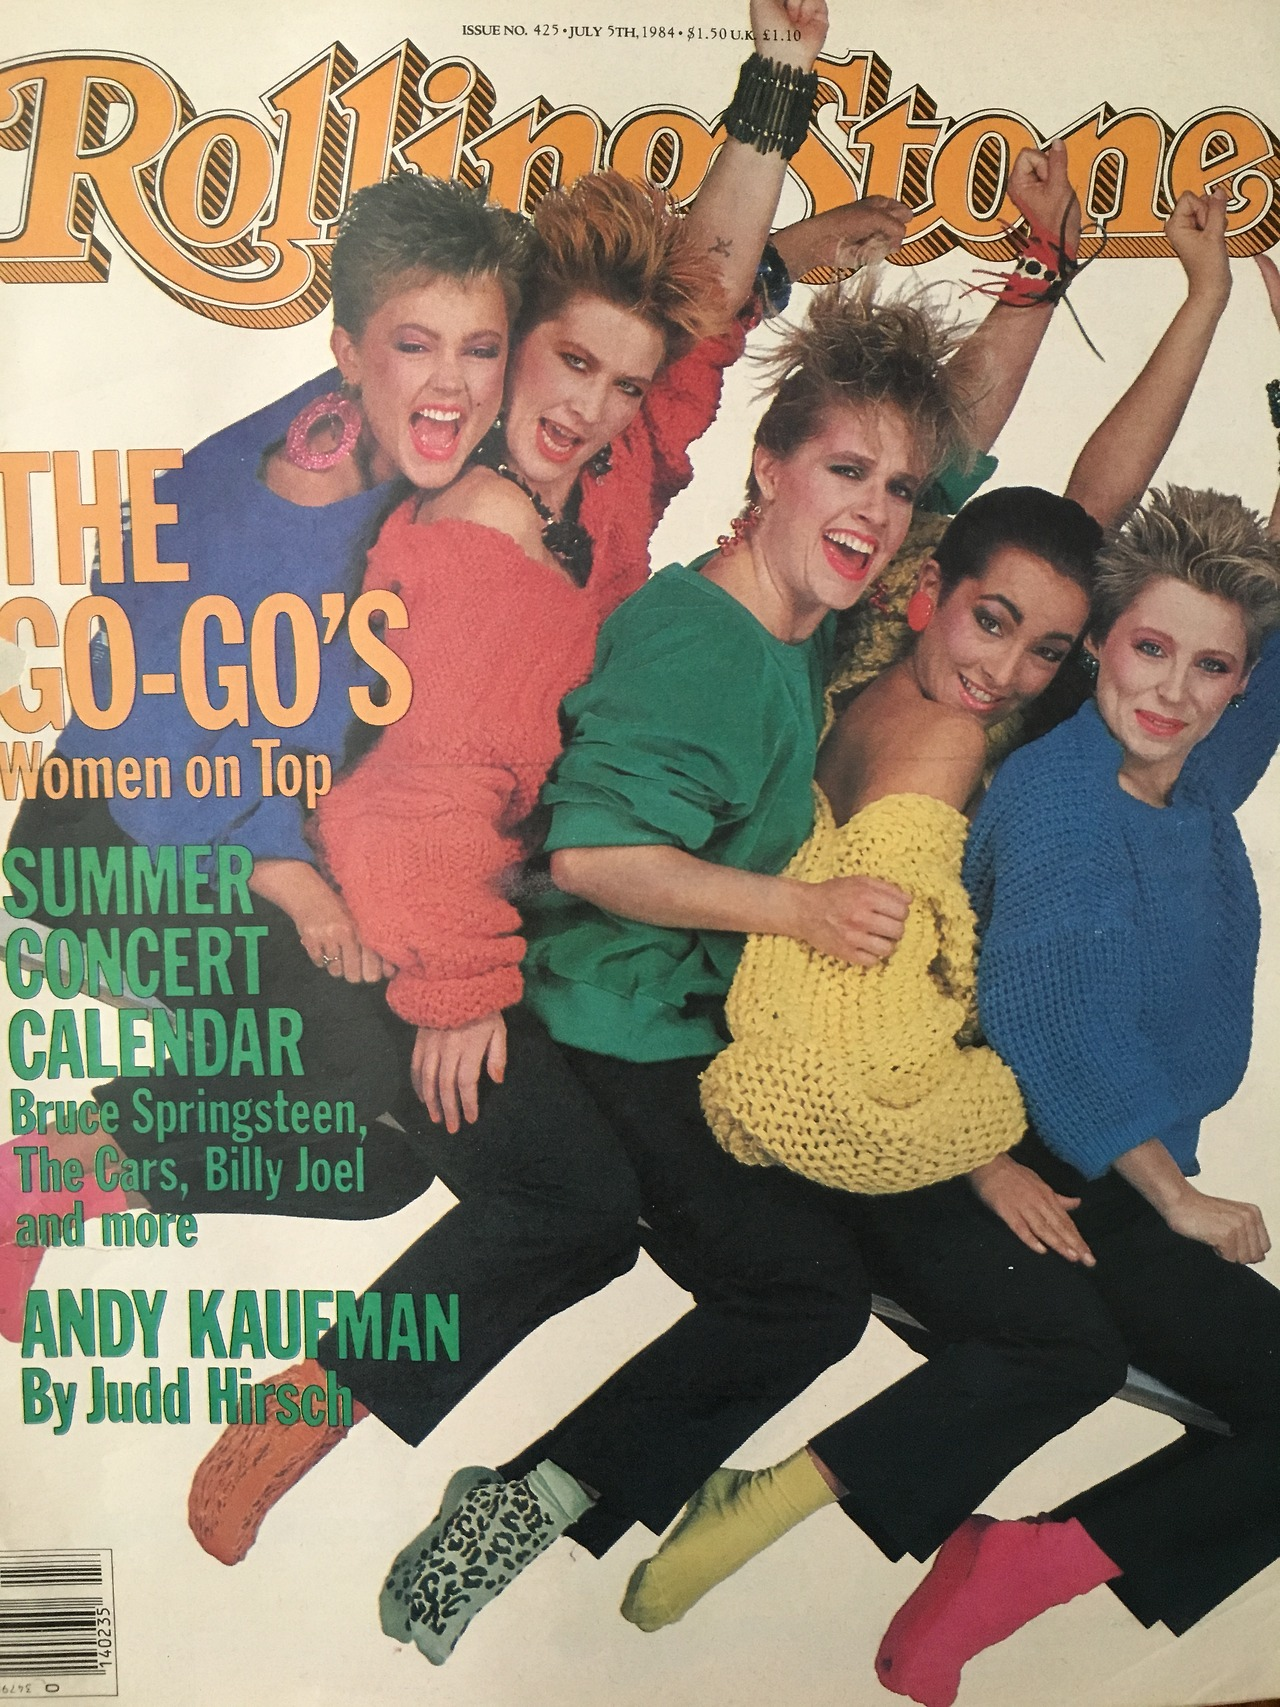 The Go-Go's Women on Top.  Rolling Stone. July 5, 1984.